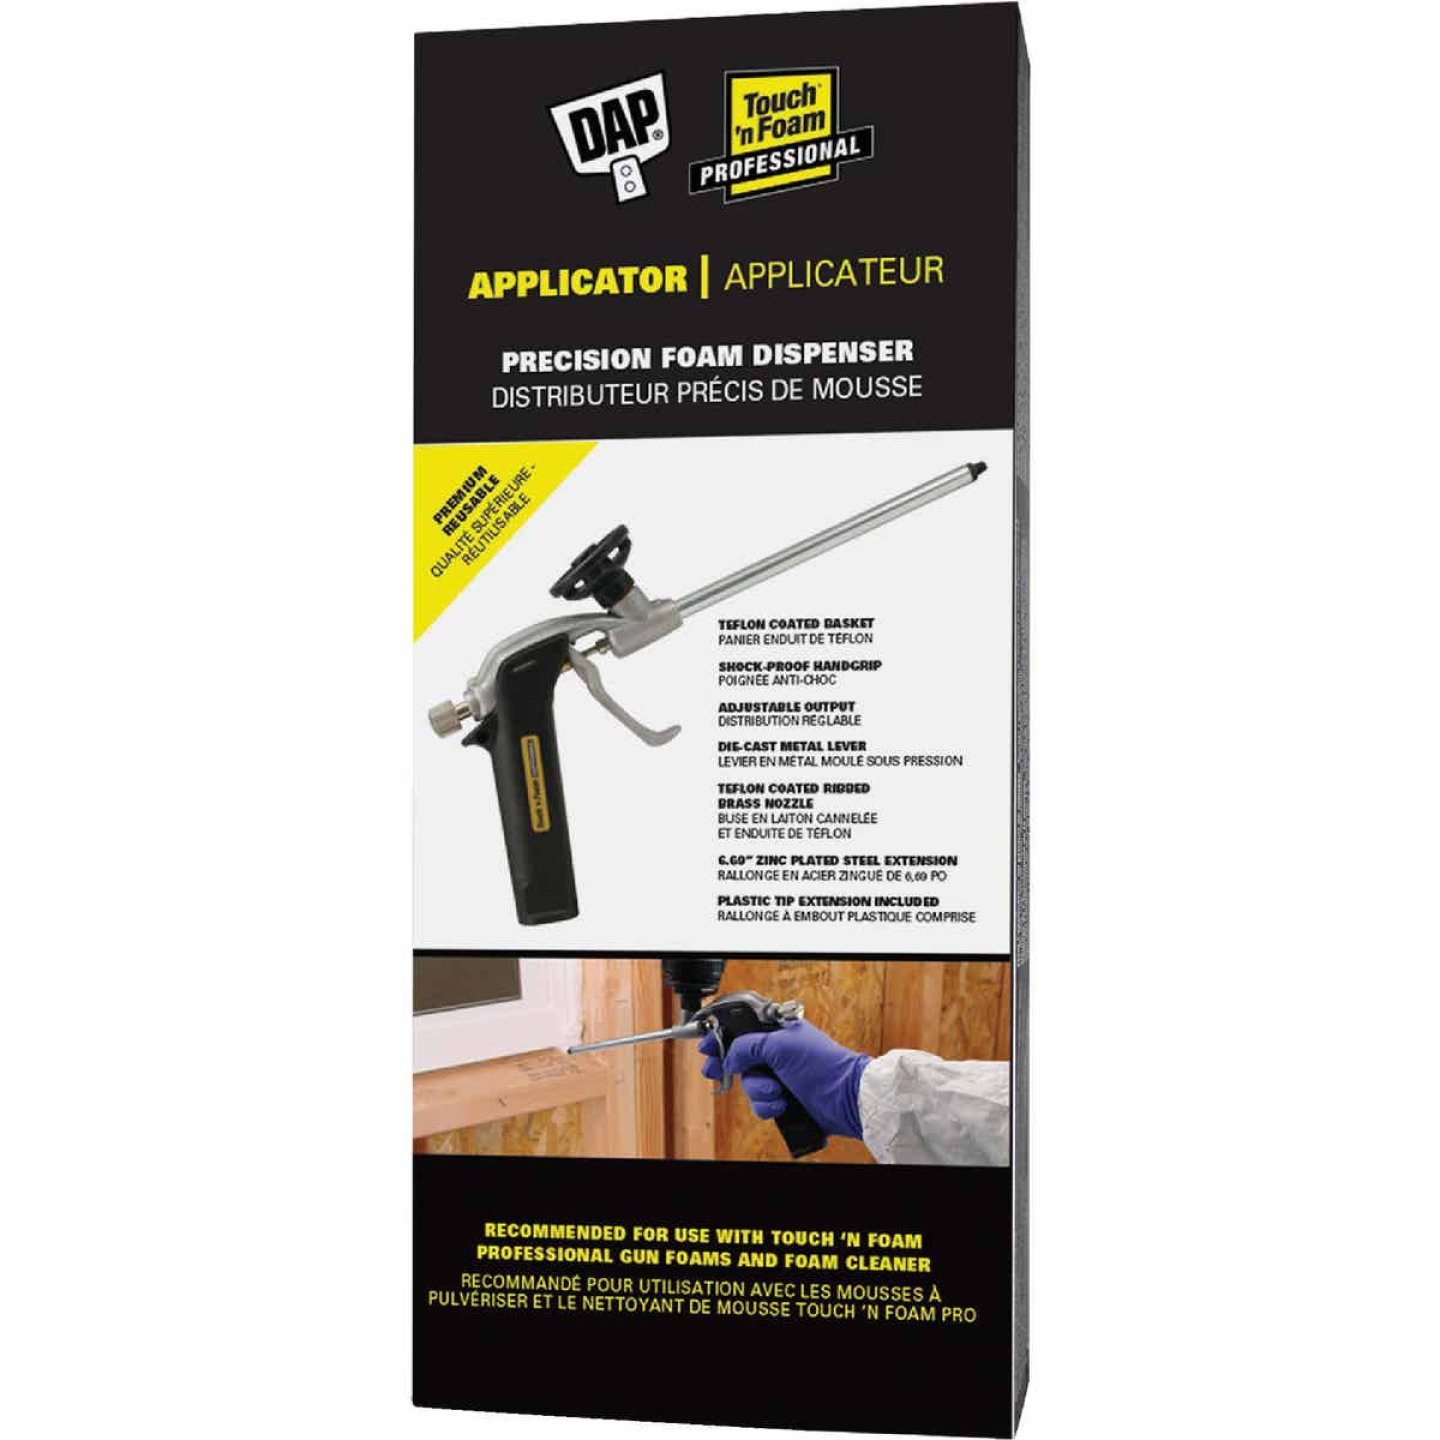 Dap Touch 'n Foam 6.7 In. Applicator Tool Image 1